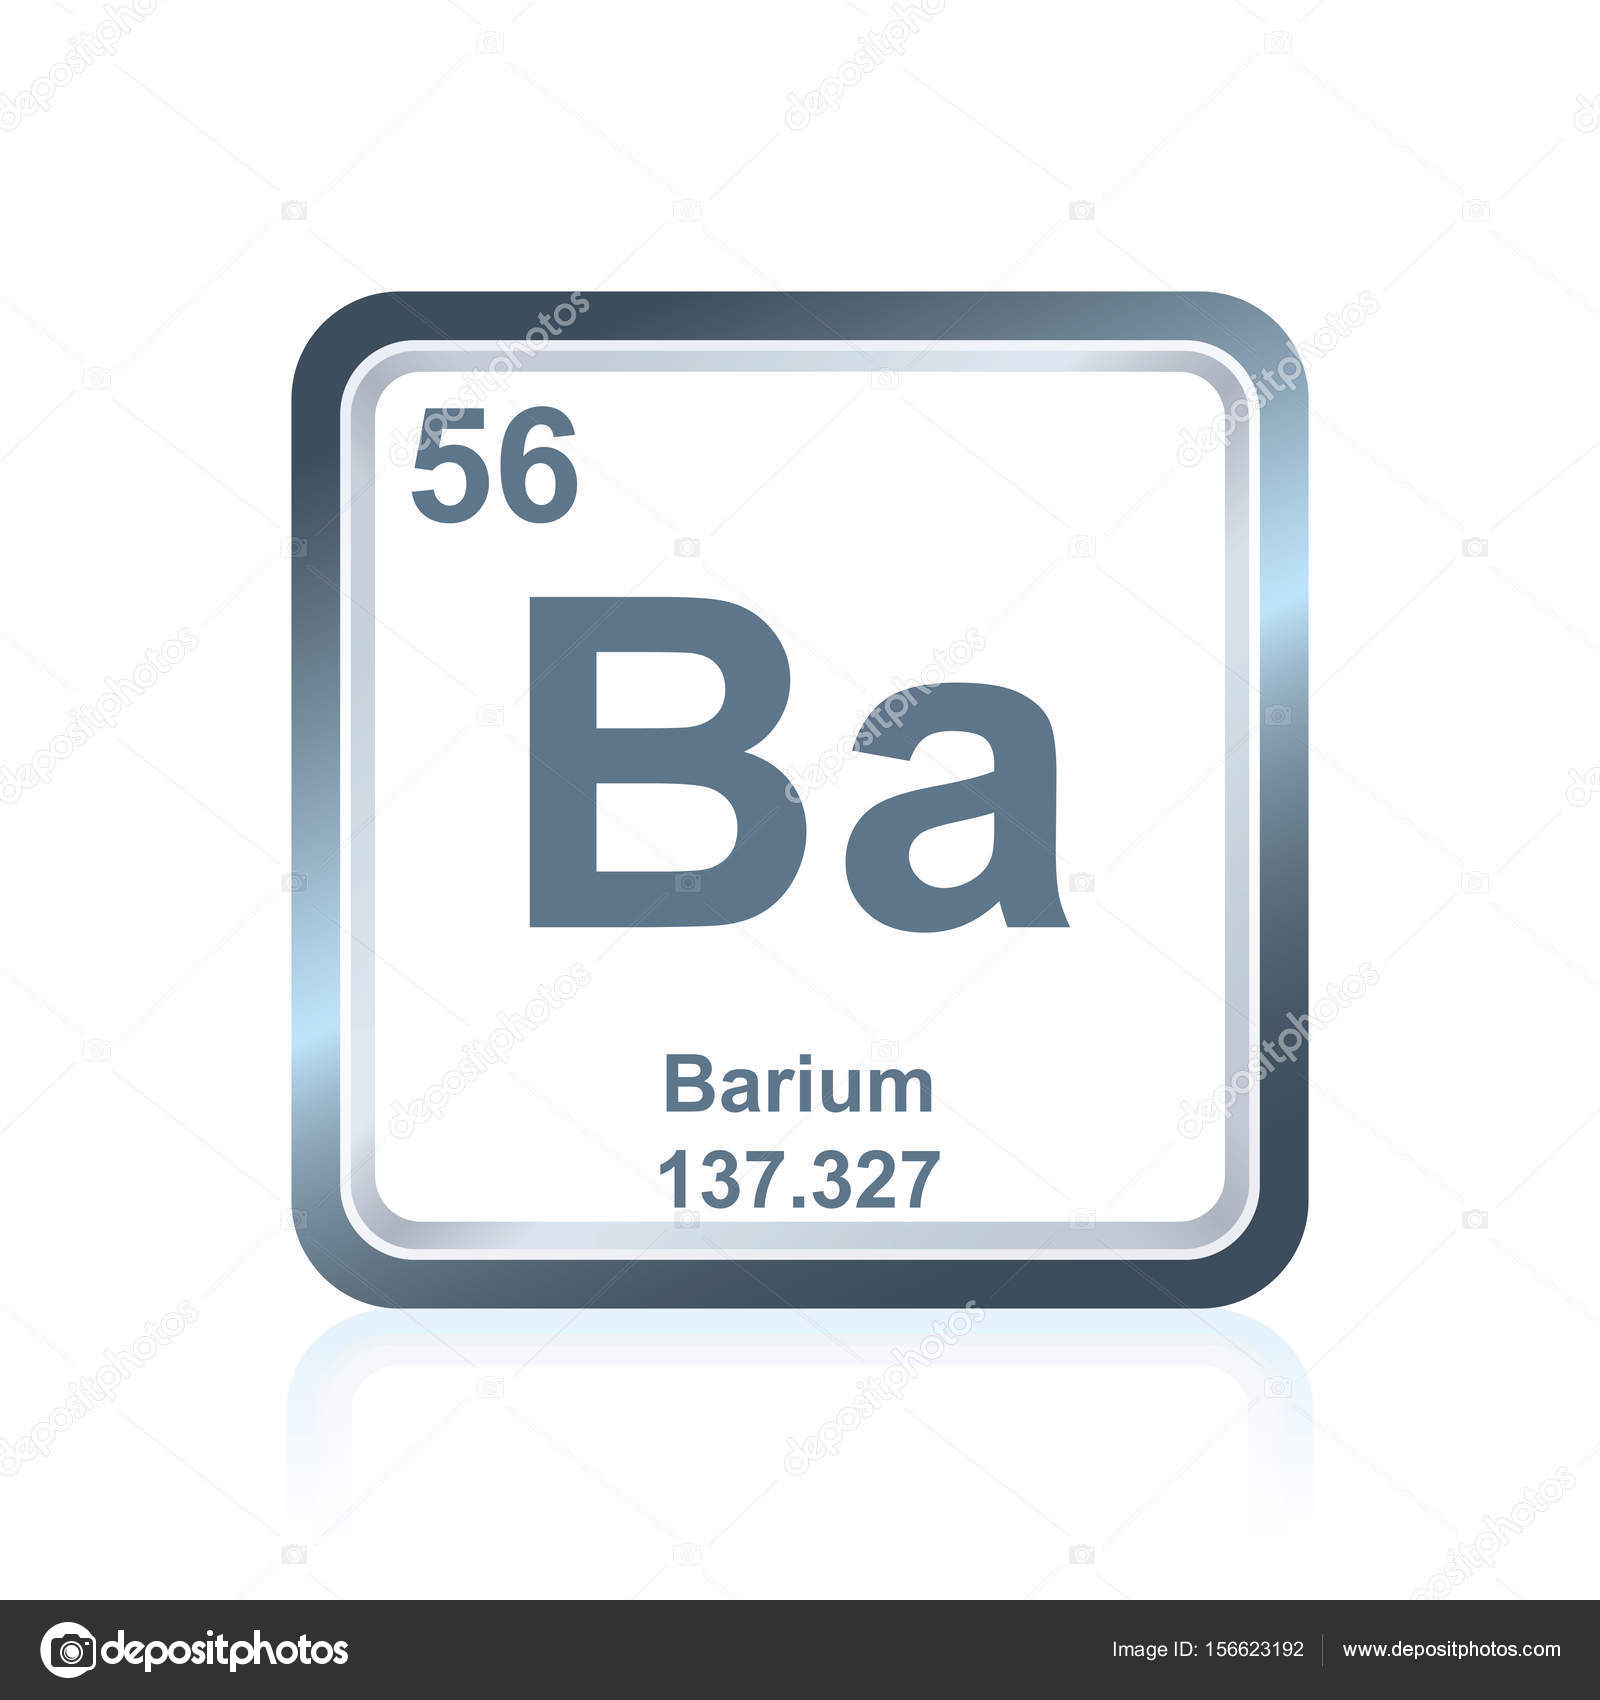 56 element periodic table image collections periodic table images 56 element periodic table images periodic table images 7th element periodic table gallery periodic table images gamestrikefo Image collections